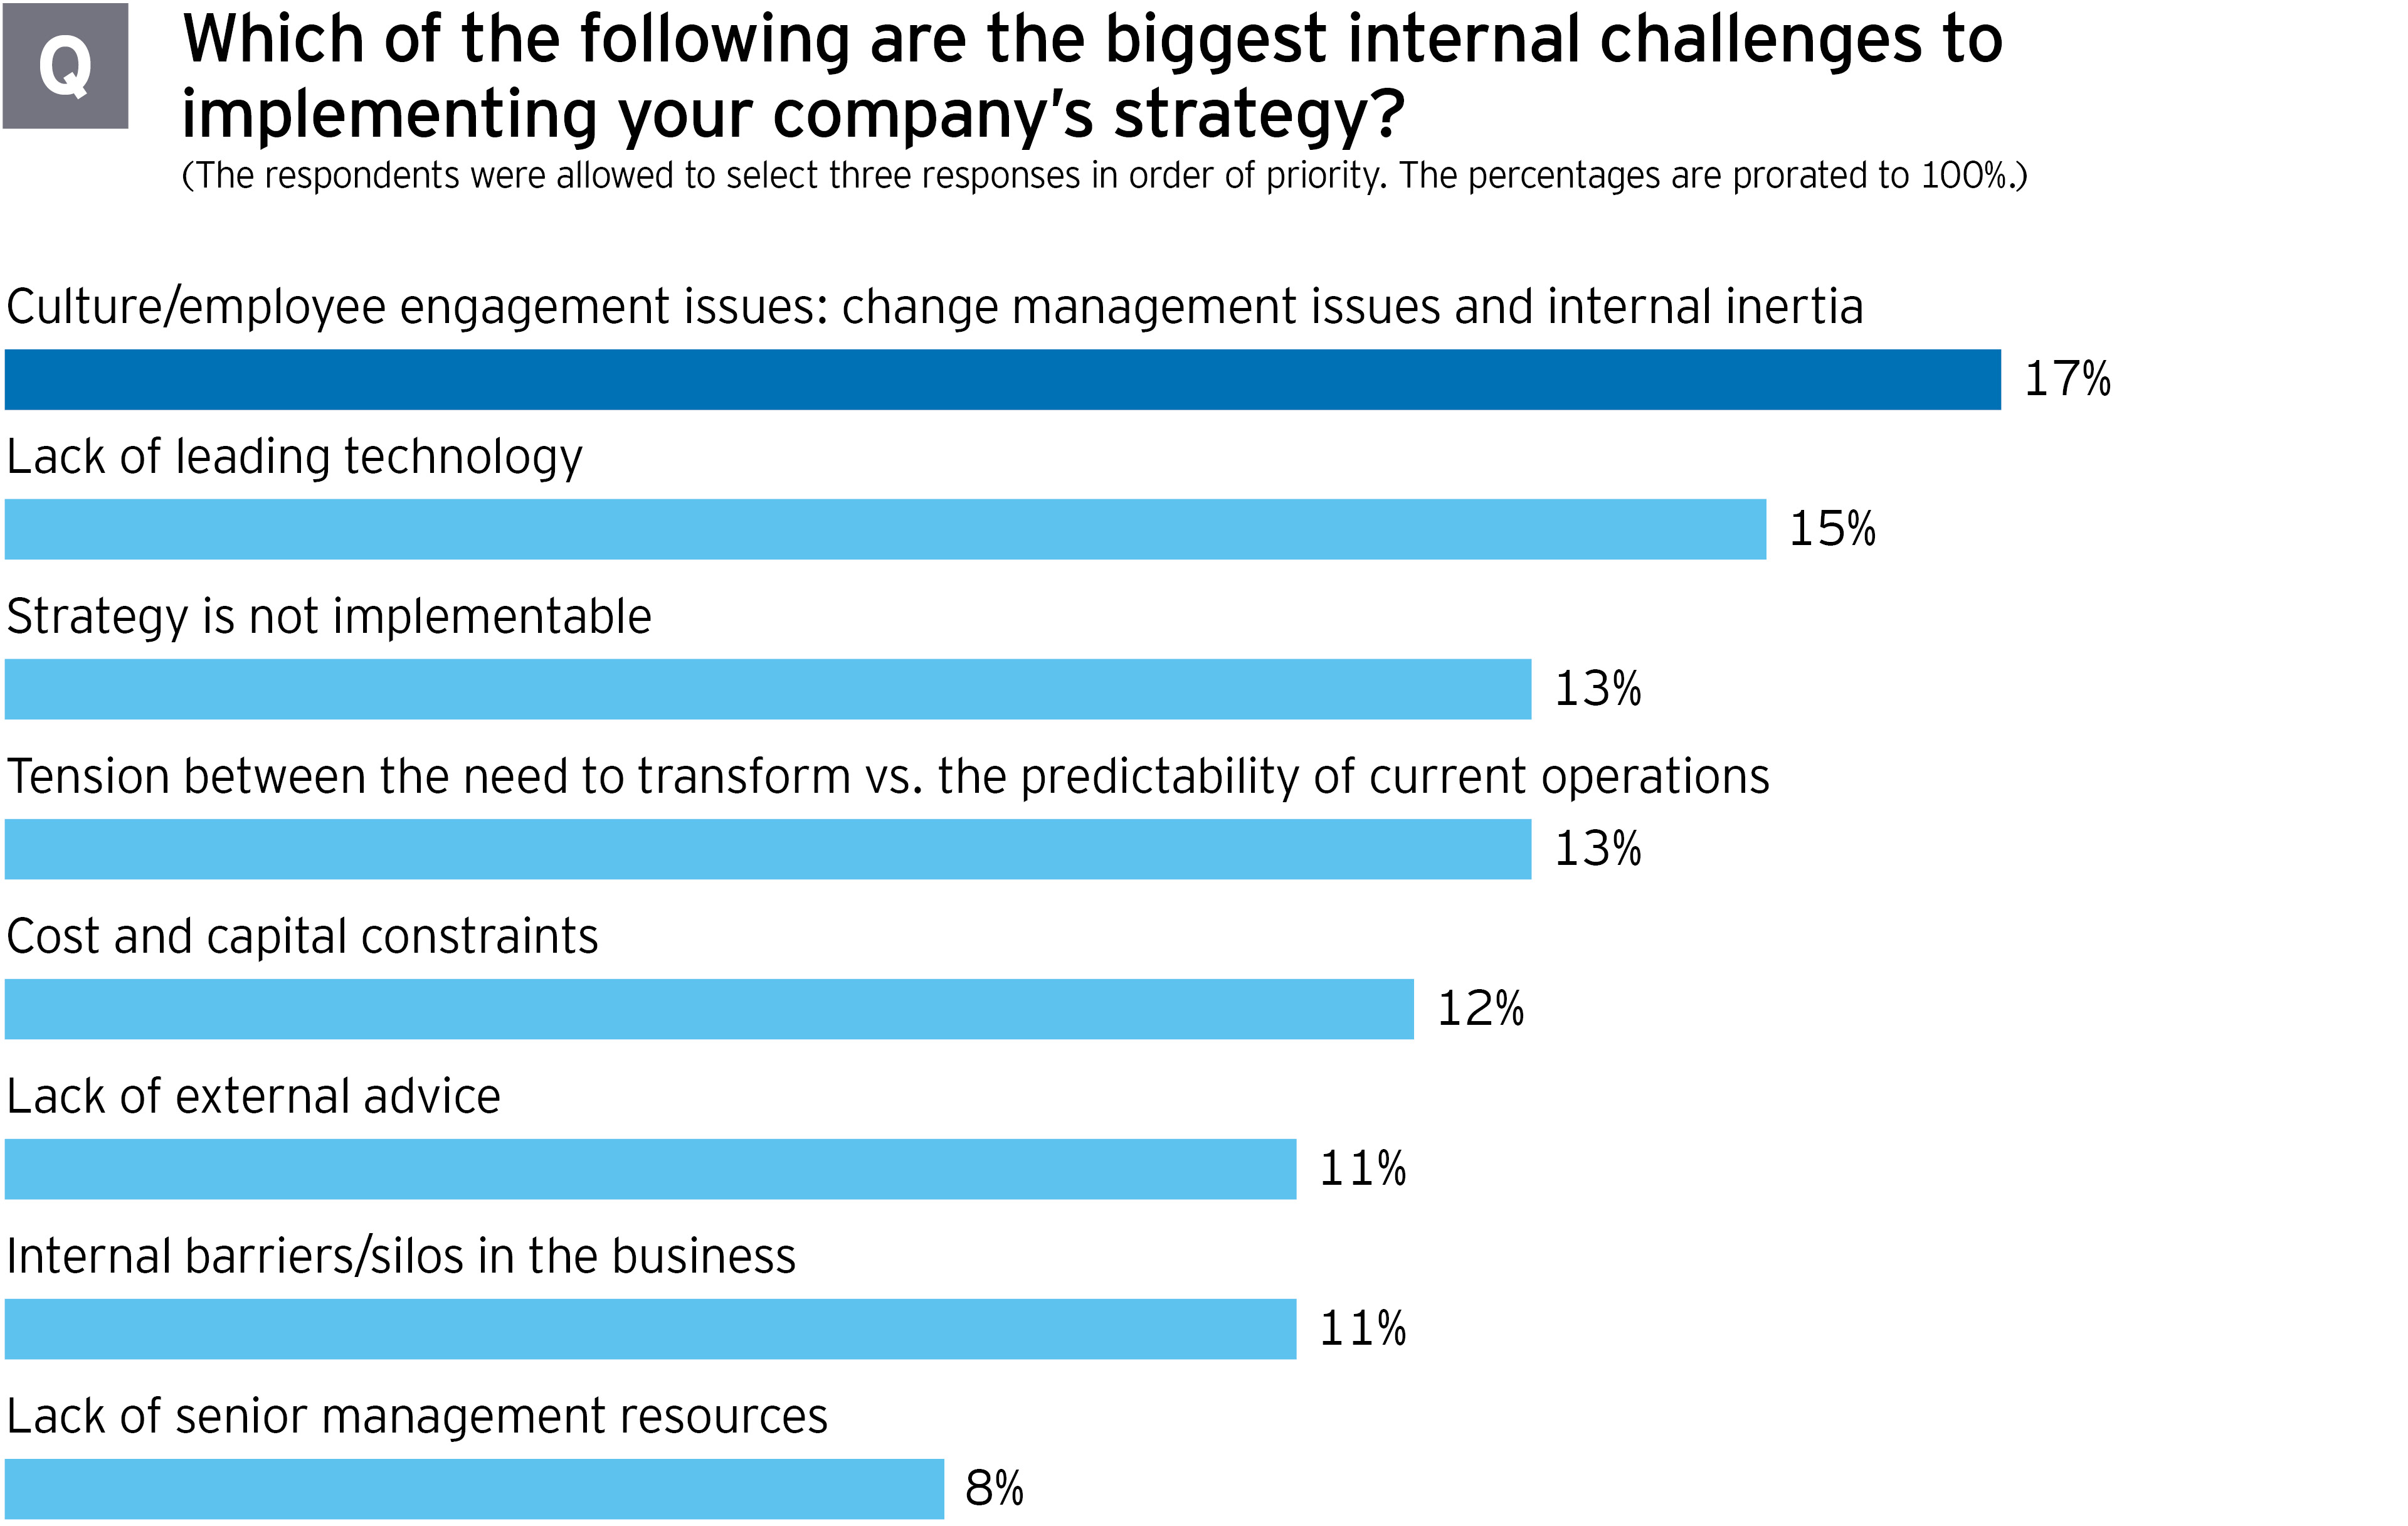 M&A survey: Biggest internal challenges to implementing your company's strategy